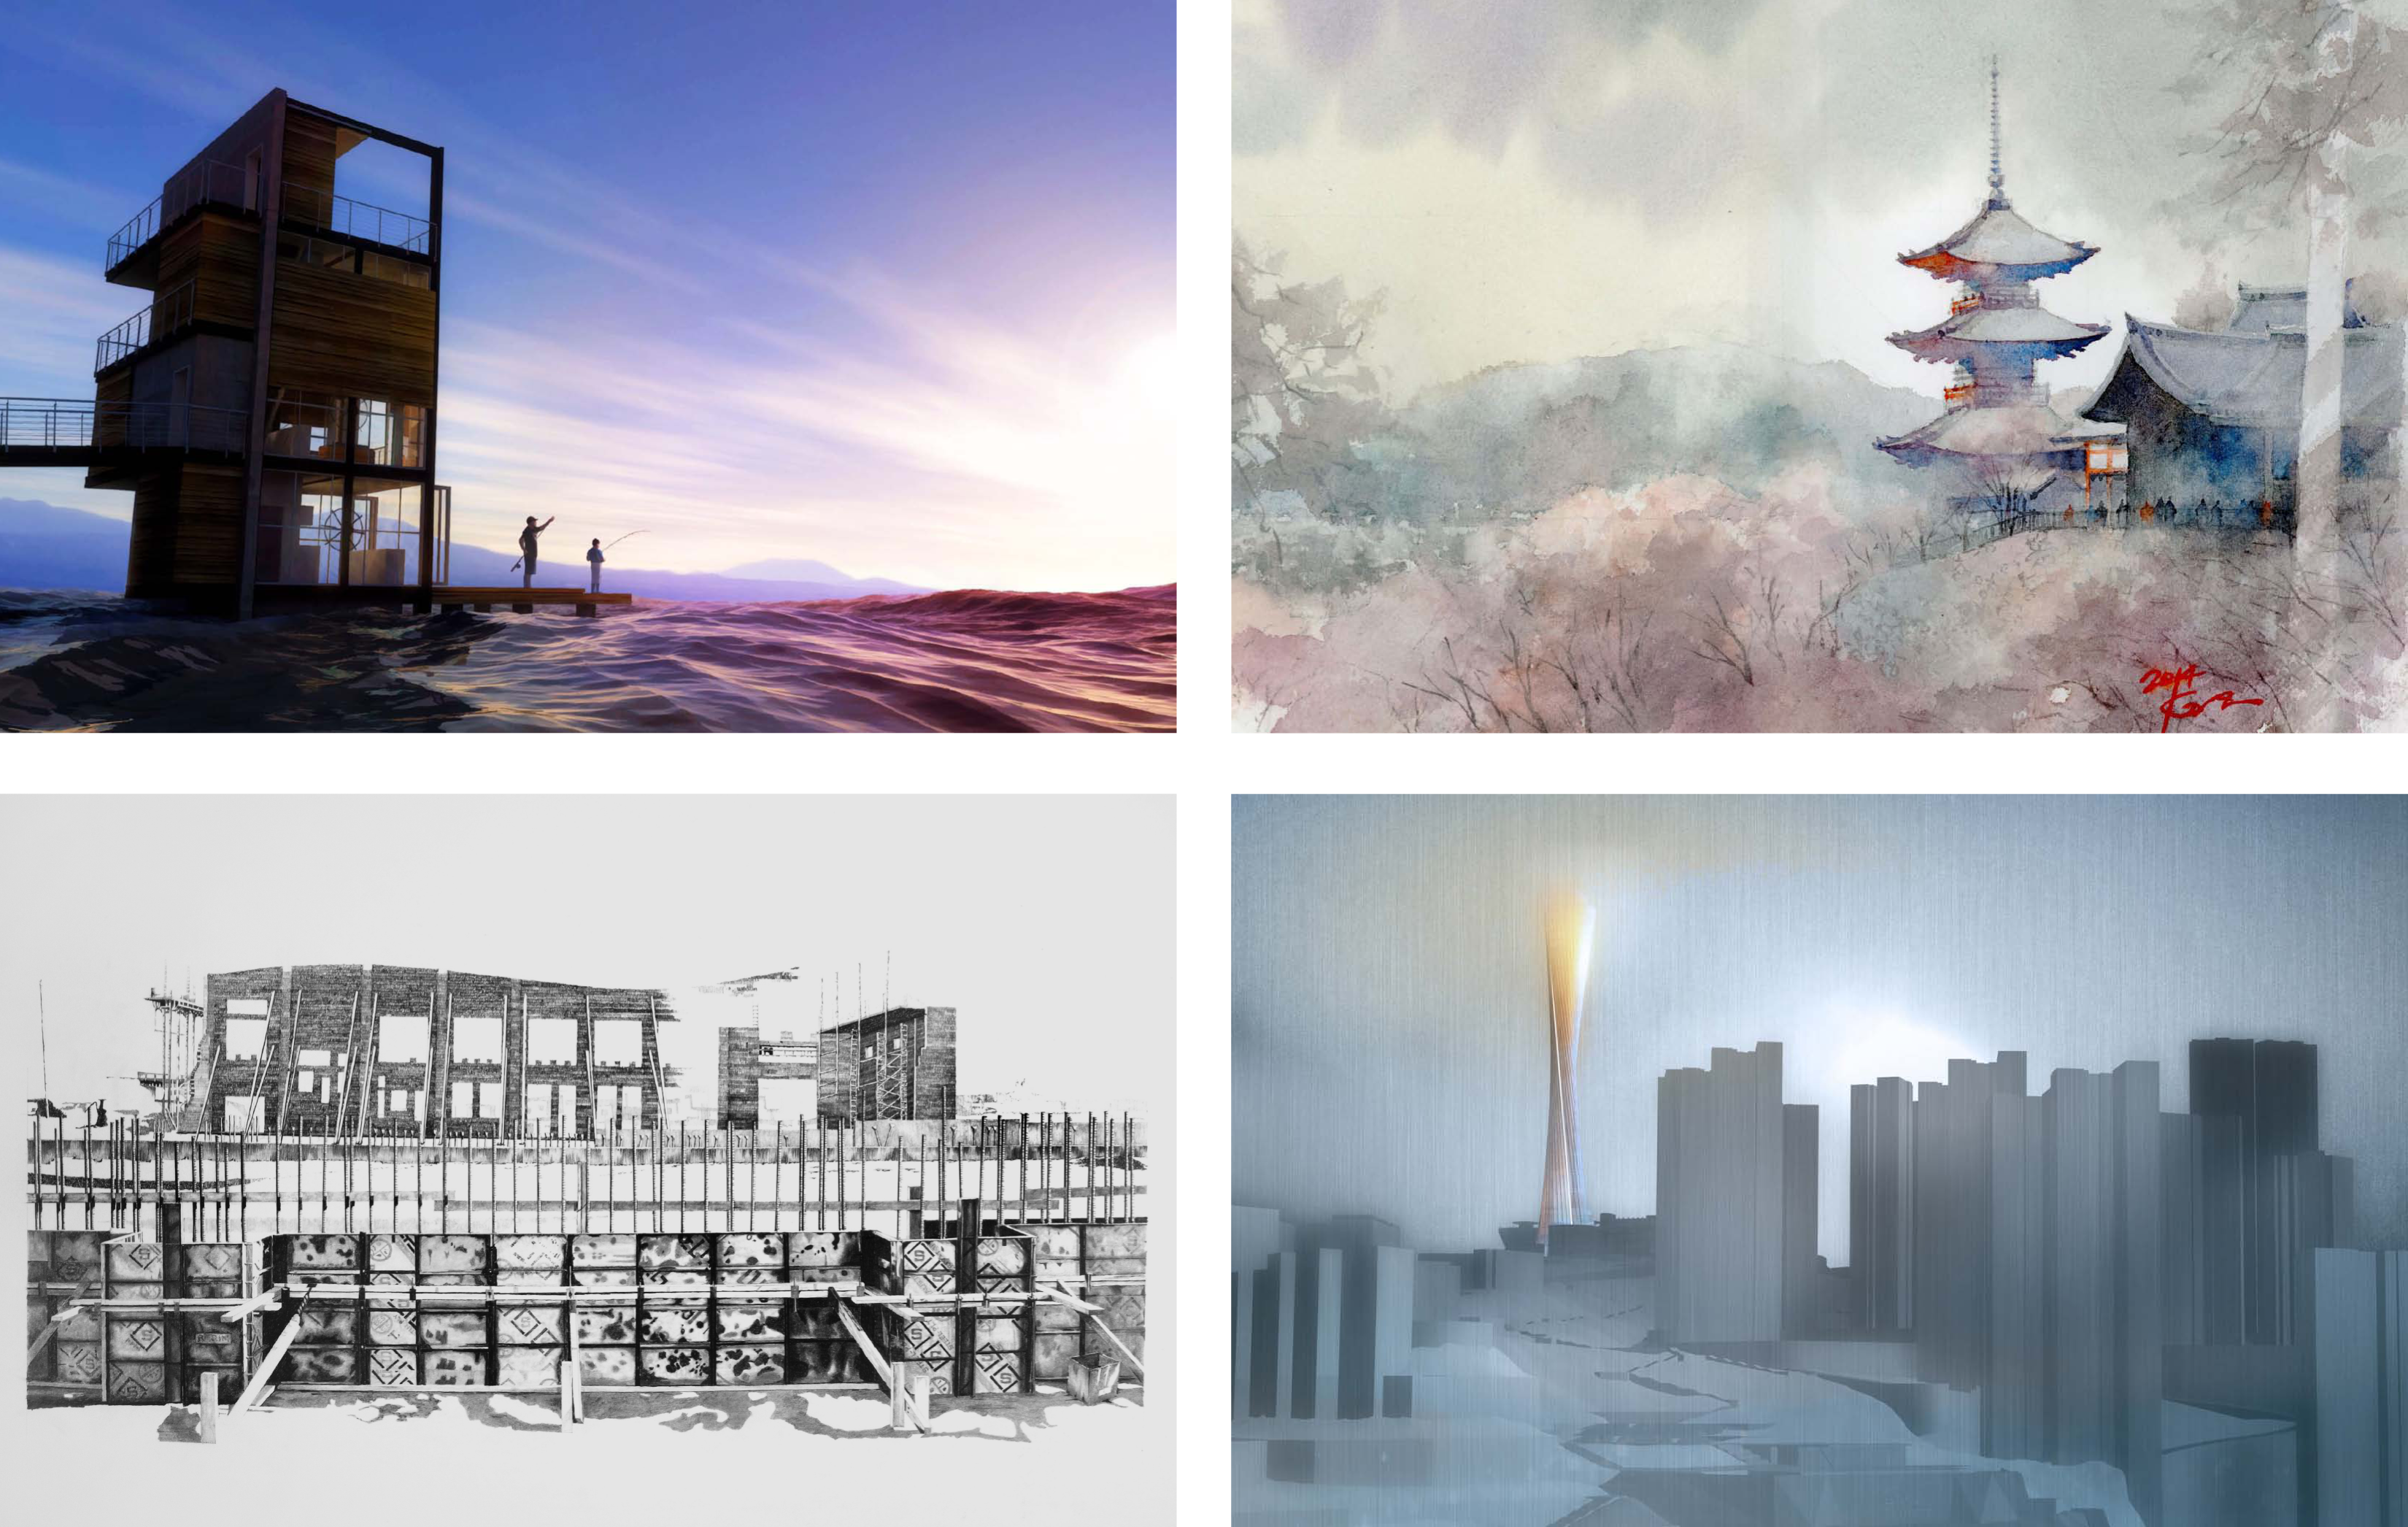 A selection of other images: (top left) 'Ocean Cottage' – Steve Thorington (Juror's Award – Richard Johnson), (top right) 'The Temple Kiyomizu 2/Kyoto' – Kazuo Hasegawa, (bottom left) 'Olathe Community Center/Olathe, KS' – Gary Schuberth (Observational – Best In Show), (bottom right) 'Tower Concept/Guiyang, China' – Anthony Chieh (Juror's Award – Thomas Payne). For a complete online gallery see: https://www.flickr.com/photos/asaihq/albums/72157650546725799